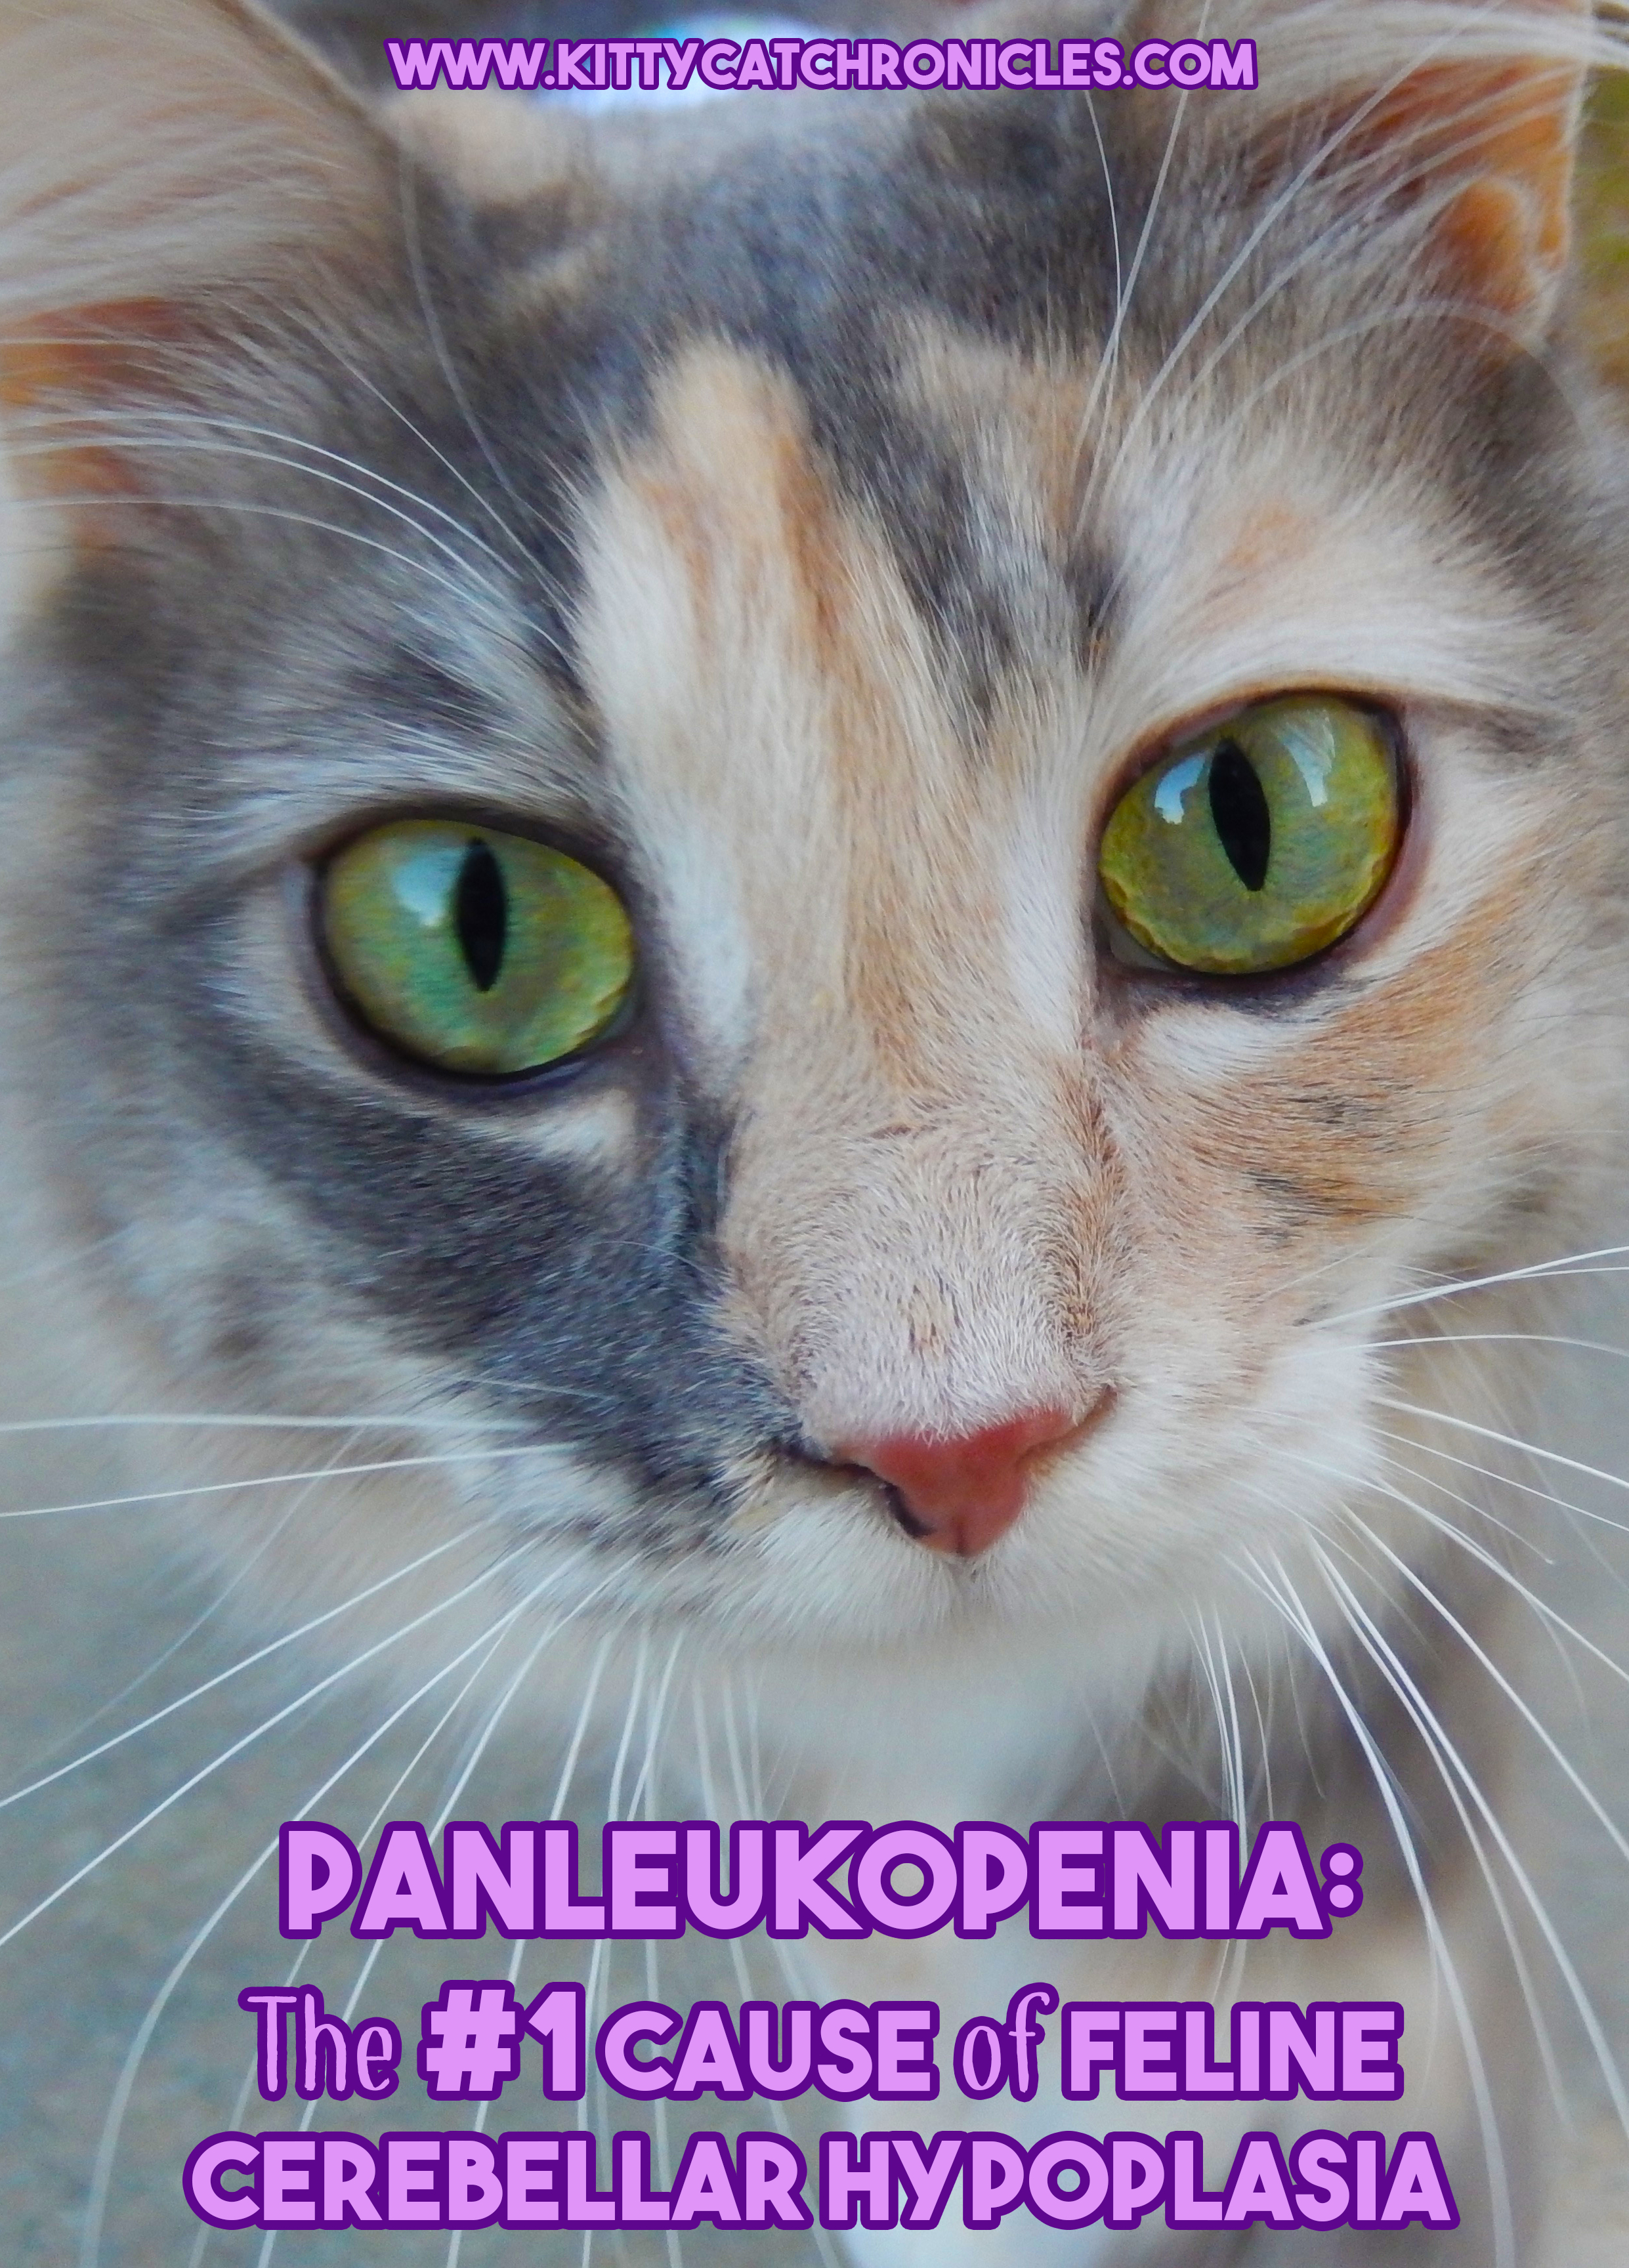 Panleukopenia: The #1 Cause of Feline Cerebellar Hypoplasia